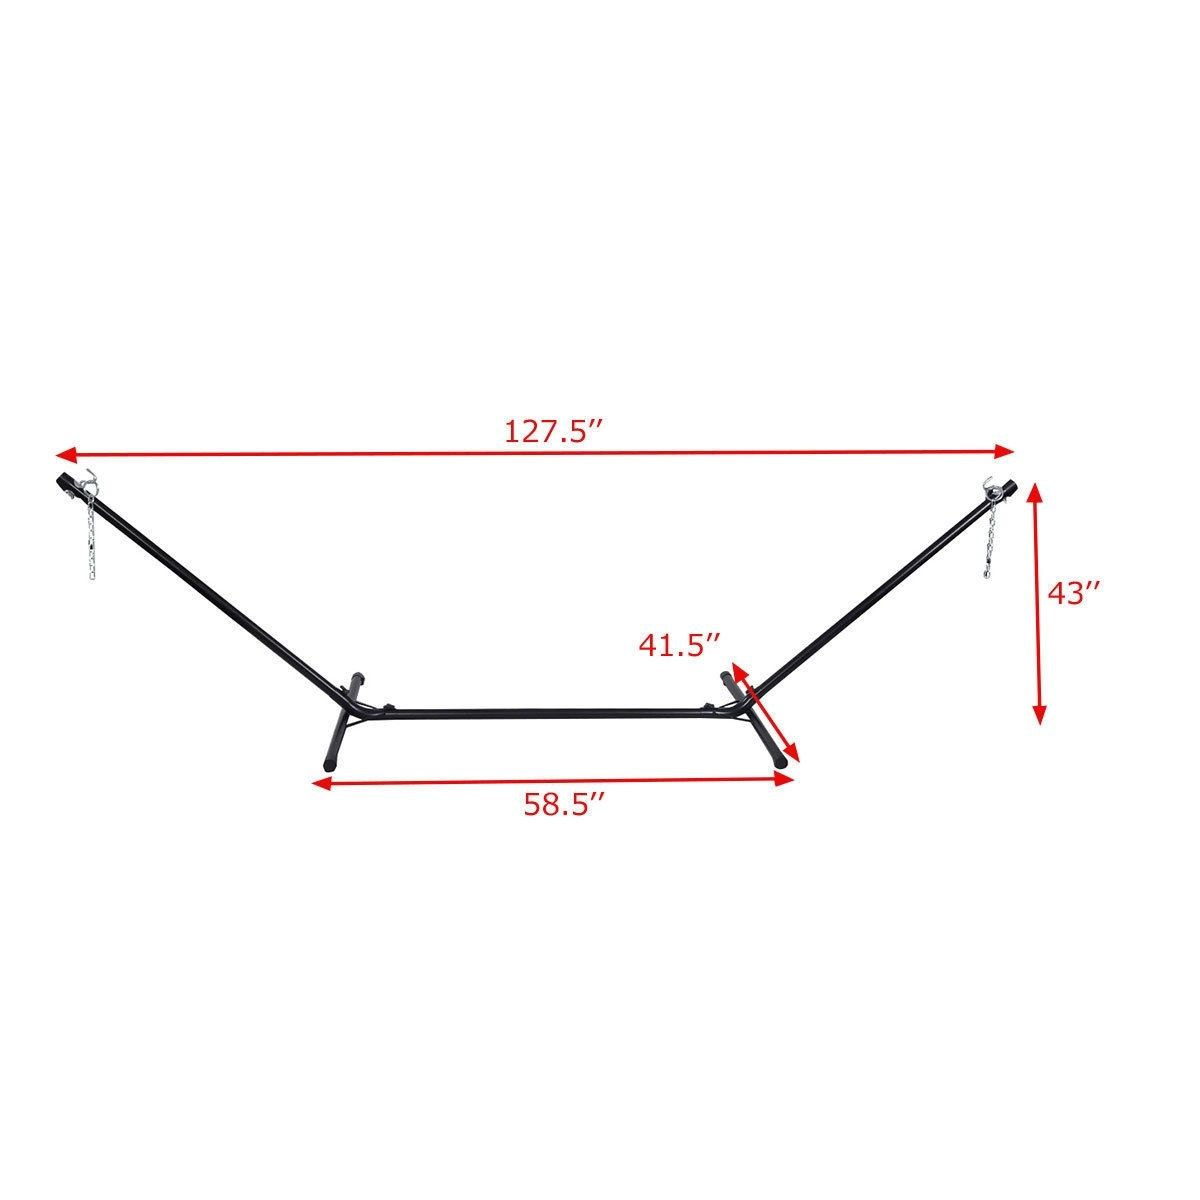 10 Ft Space Saving Steel Hammock Stand Color Black Material Durable Steel With Powder Coated Weight C Hammock Stand Hammock Stand Diy Hammock Chair Stand Diy